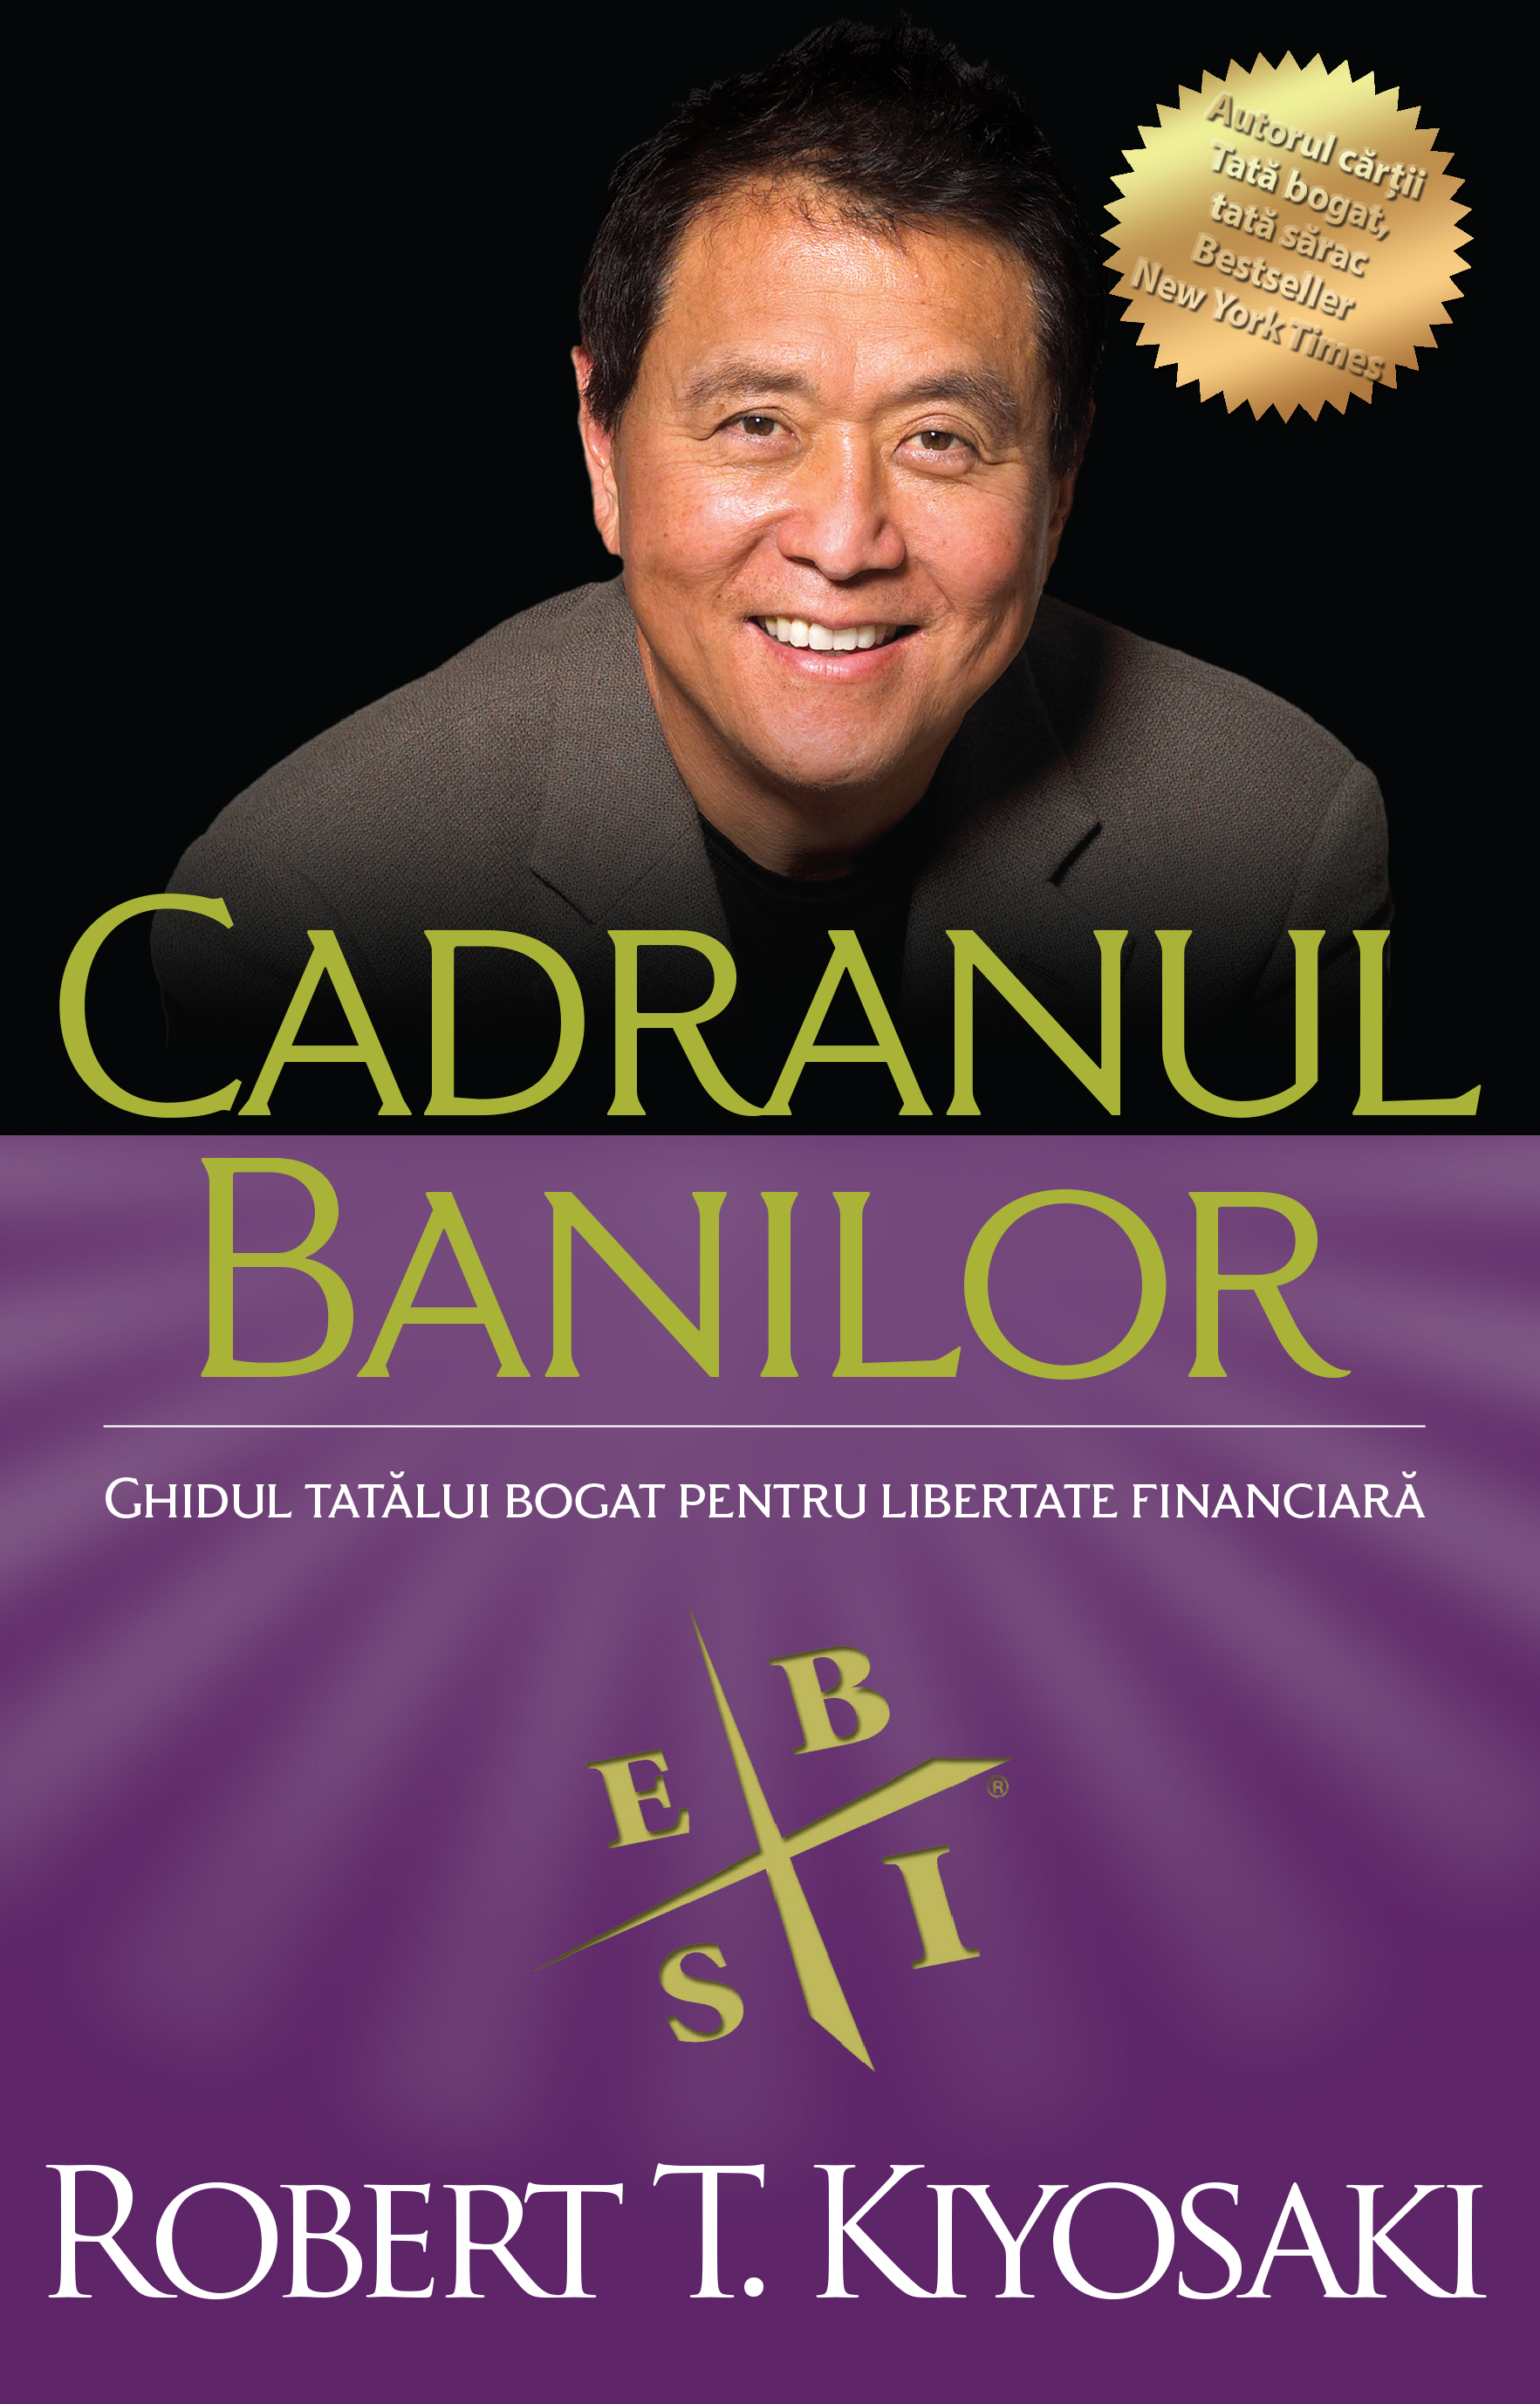 Imagine  Cadranul Banilor - Robert T - Kiyosaki, Sharon L - Lechter